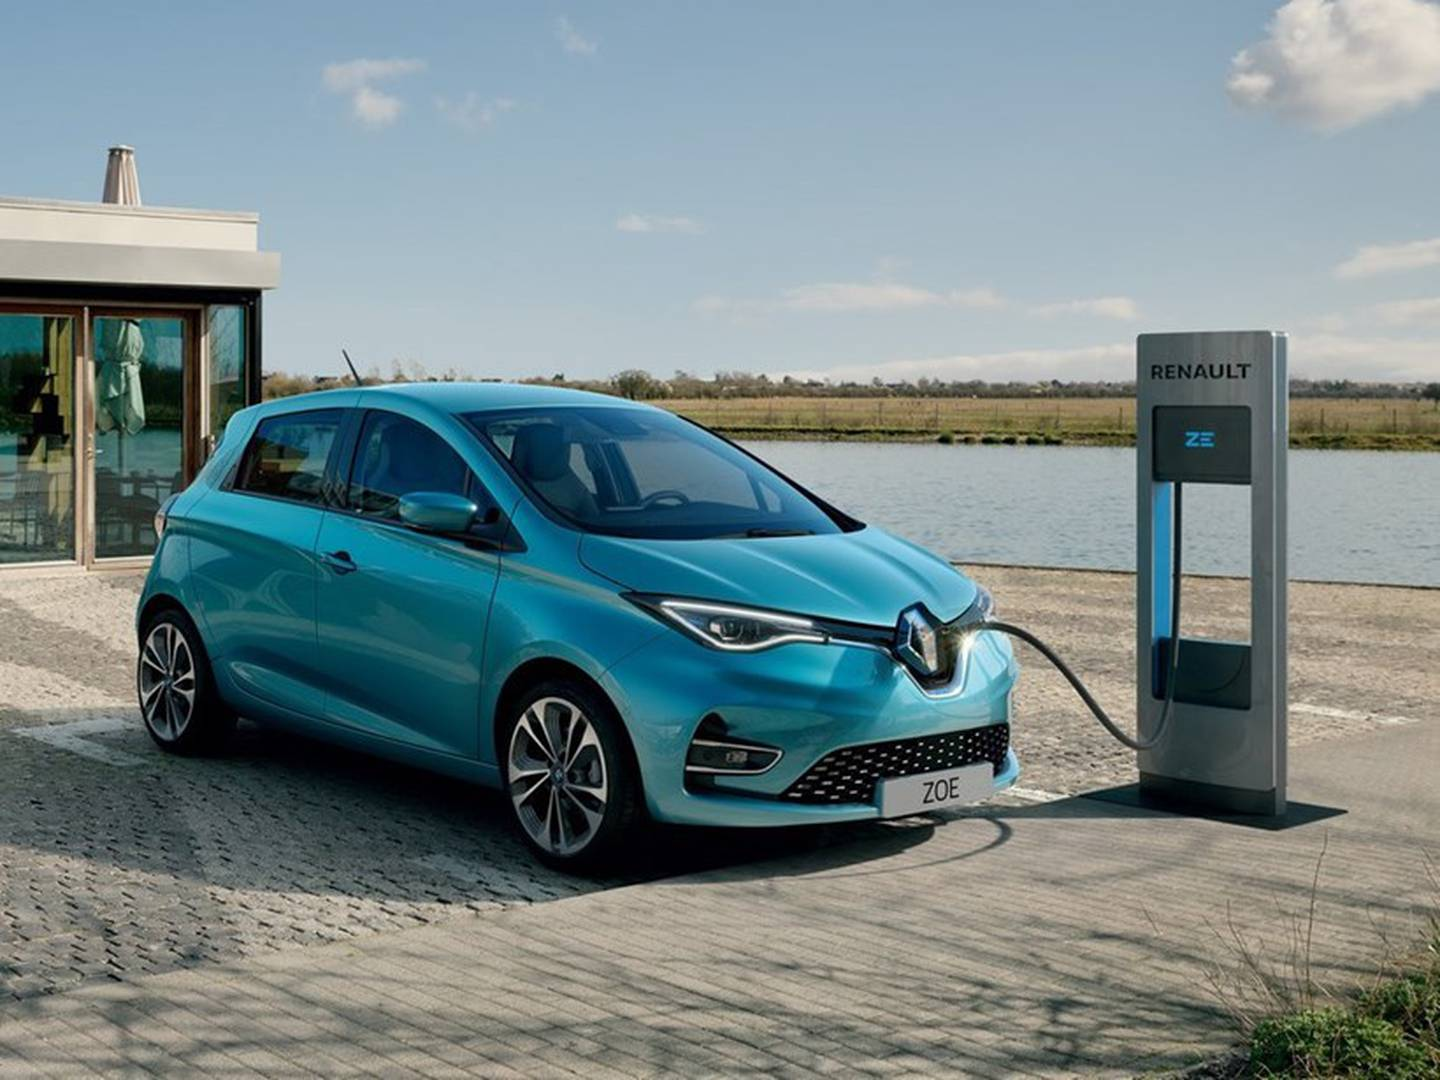 A Renault Zoe EV (electric vehicle), similar to the one purchased by the Lindsays. Photo / Driven